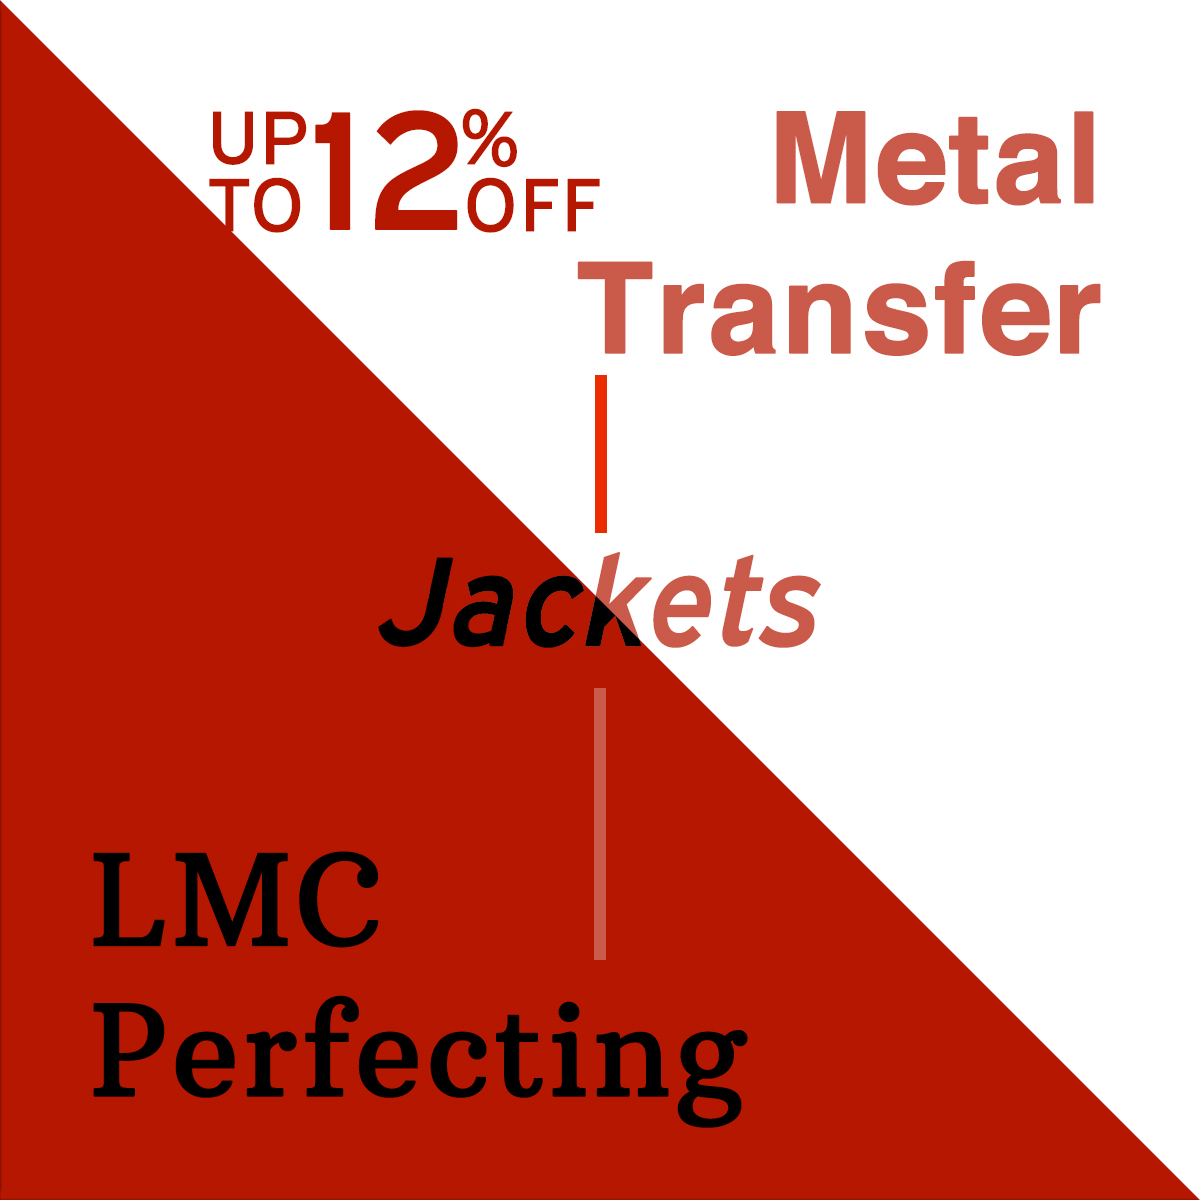 Up to 12% OFF Metal Transfer & LMC Perfecting Jackets